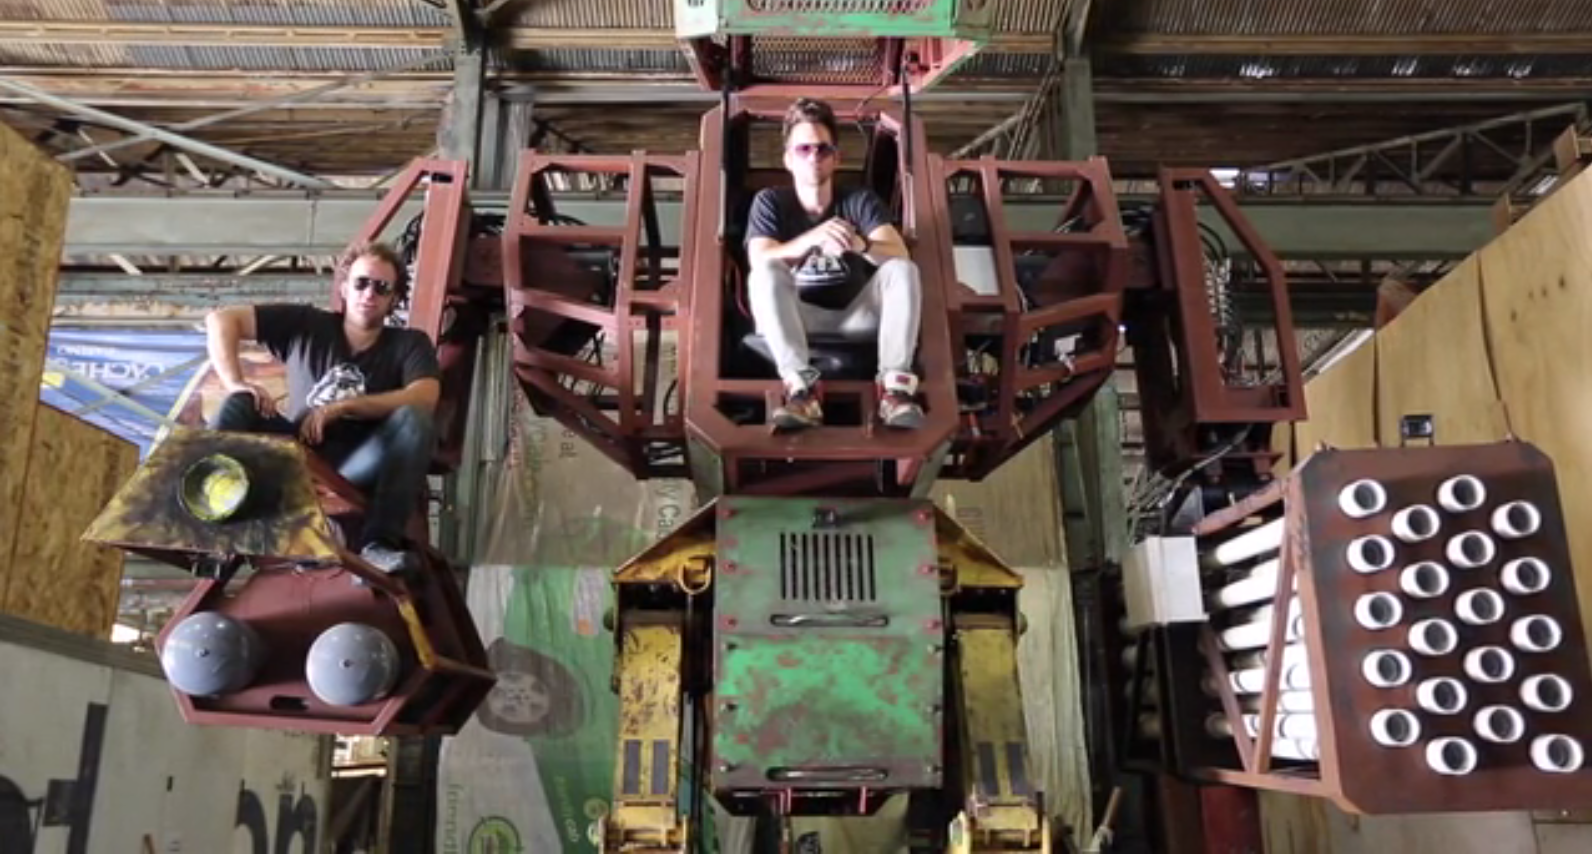 This Company Wants to Start a New Sports League with Giant Fighting Robots